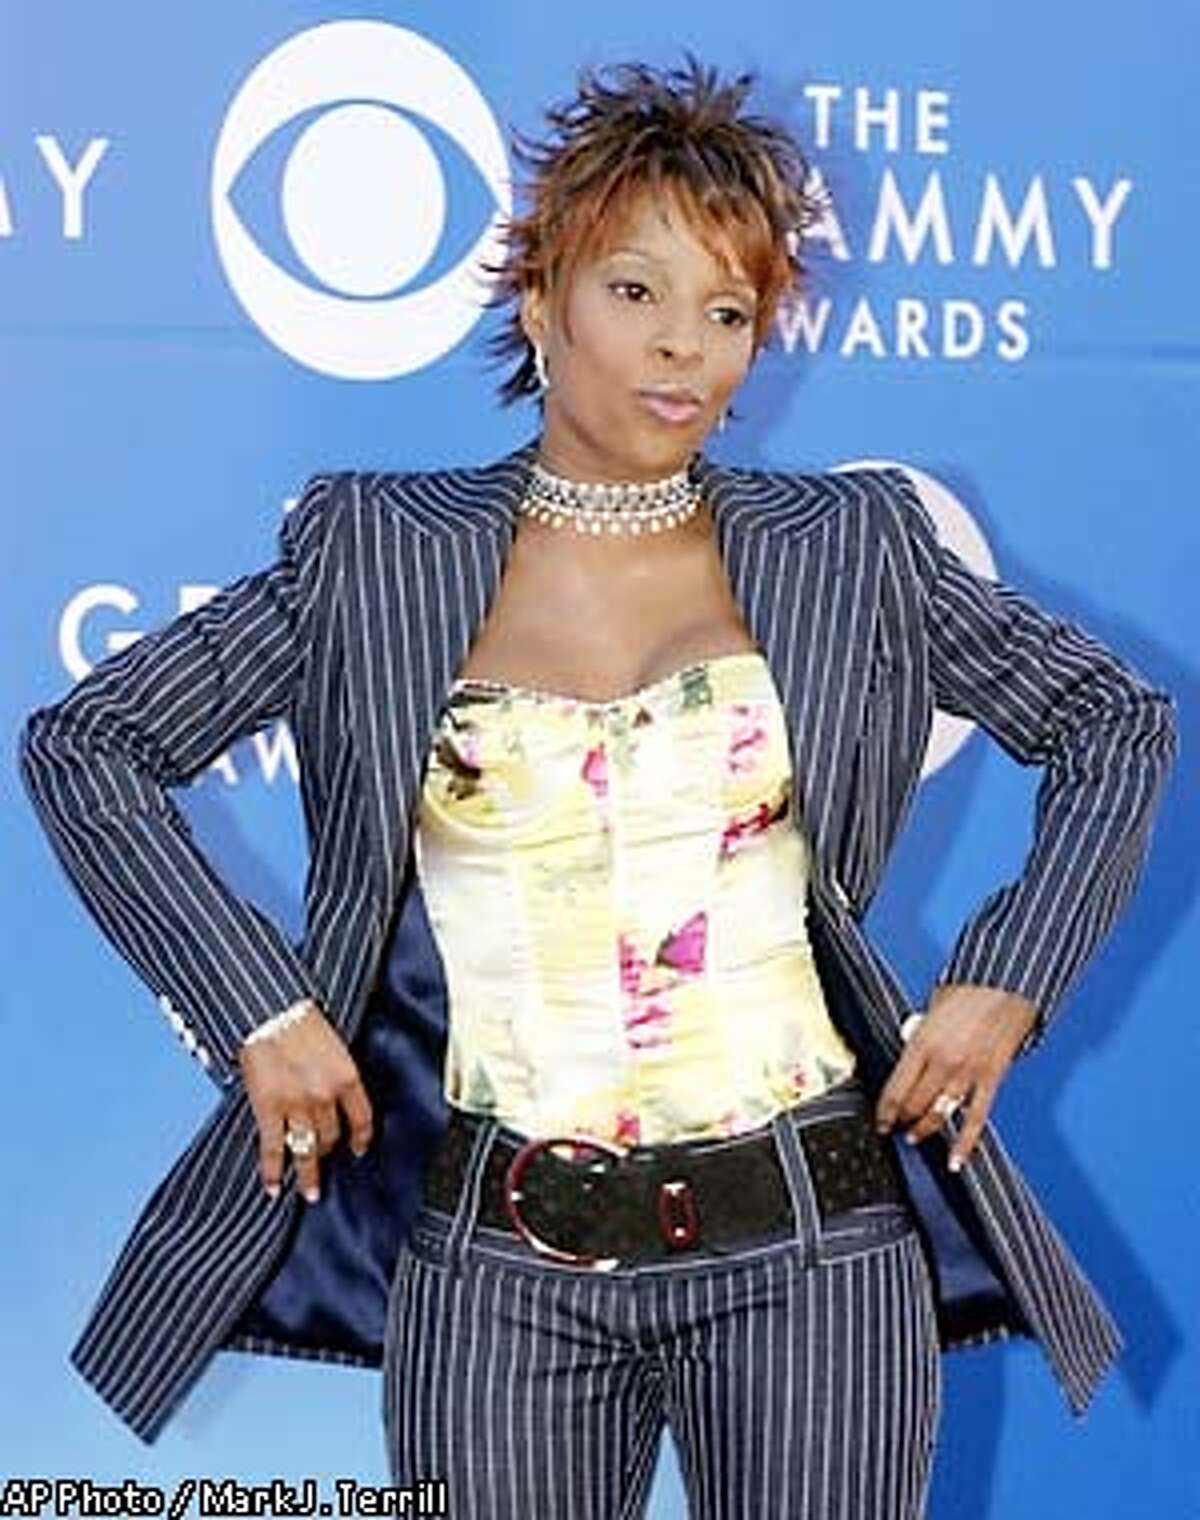 Grammy nominee Mary J. Blige arrives at the 44th annual Grammy Awards, Wednesday, Feb. 27, 2002, at the Staples Center in Los Angeles. (AP Photo/Mark J. Terrill)